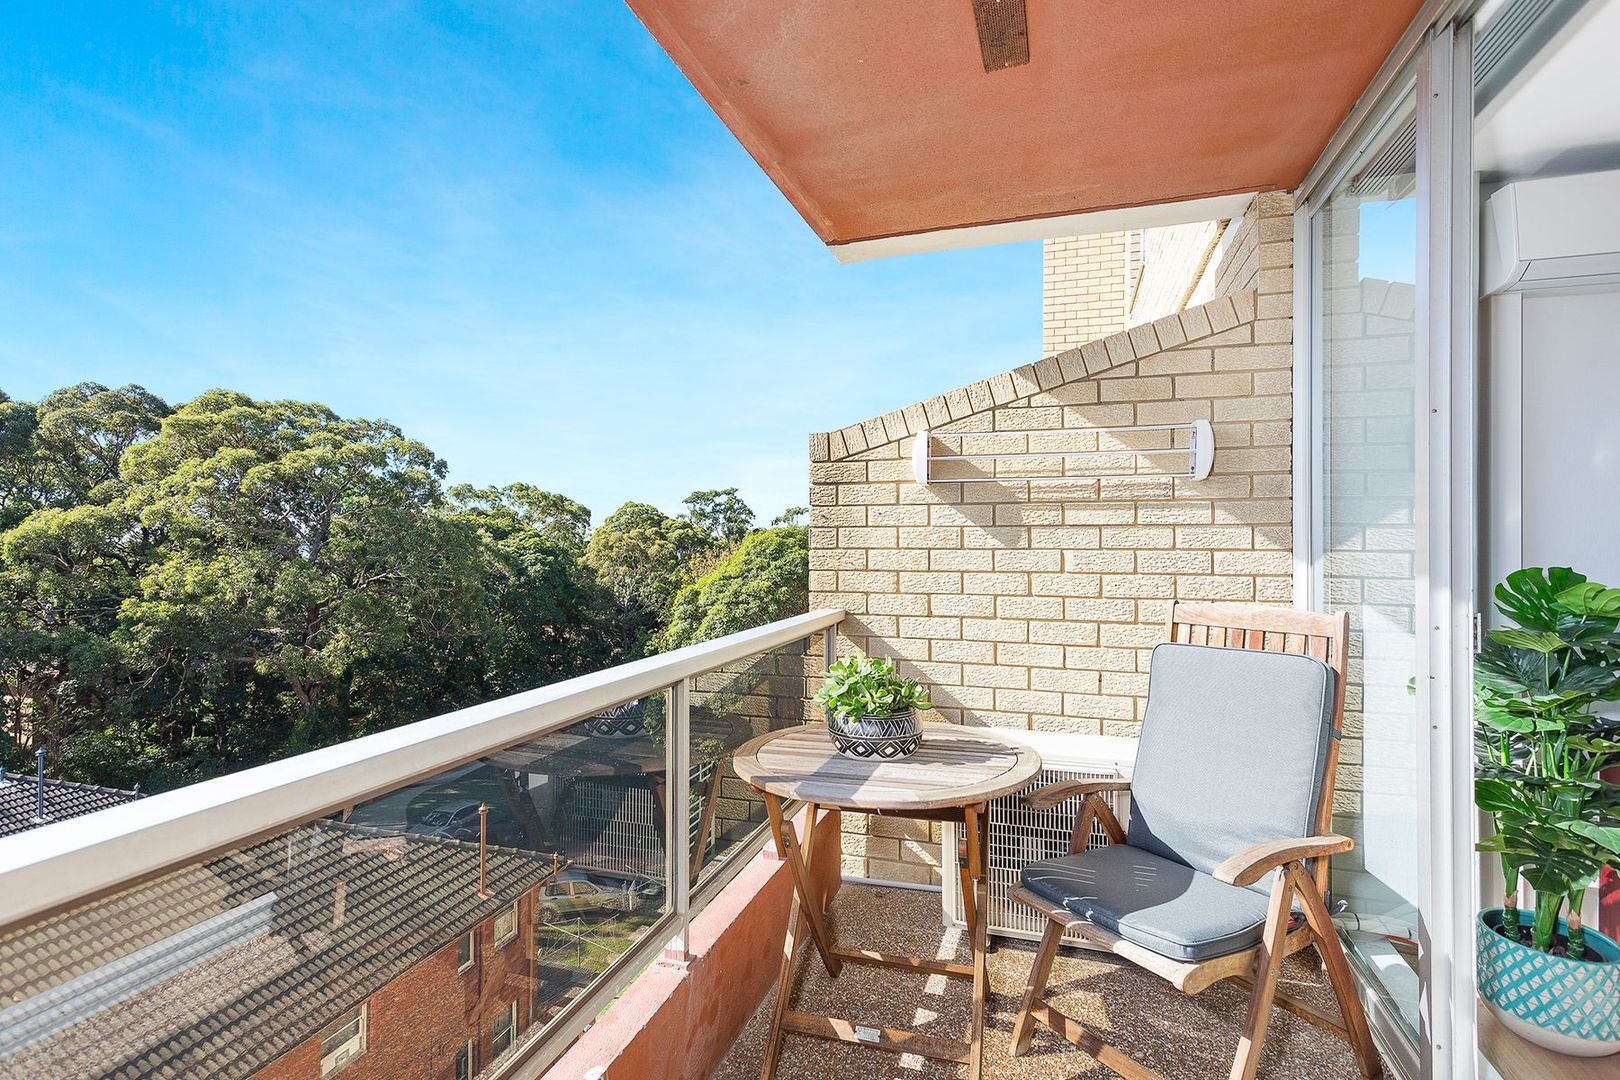 29A/168-172 Willarong Road, Caringbah NSW 2229, Image 1